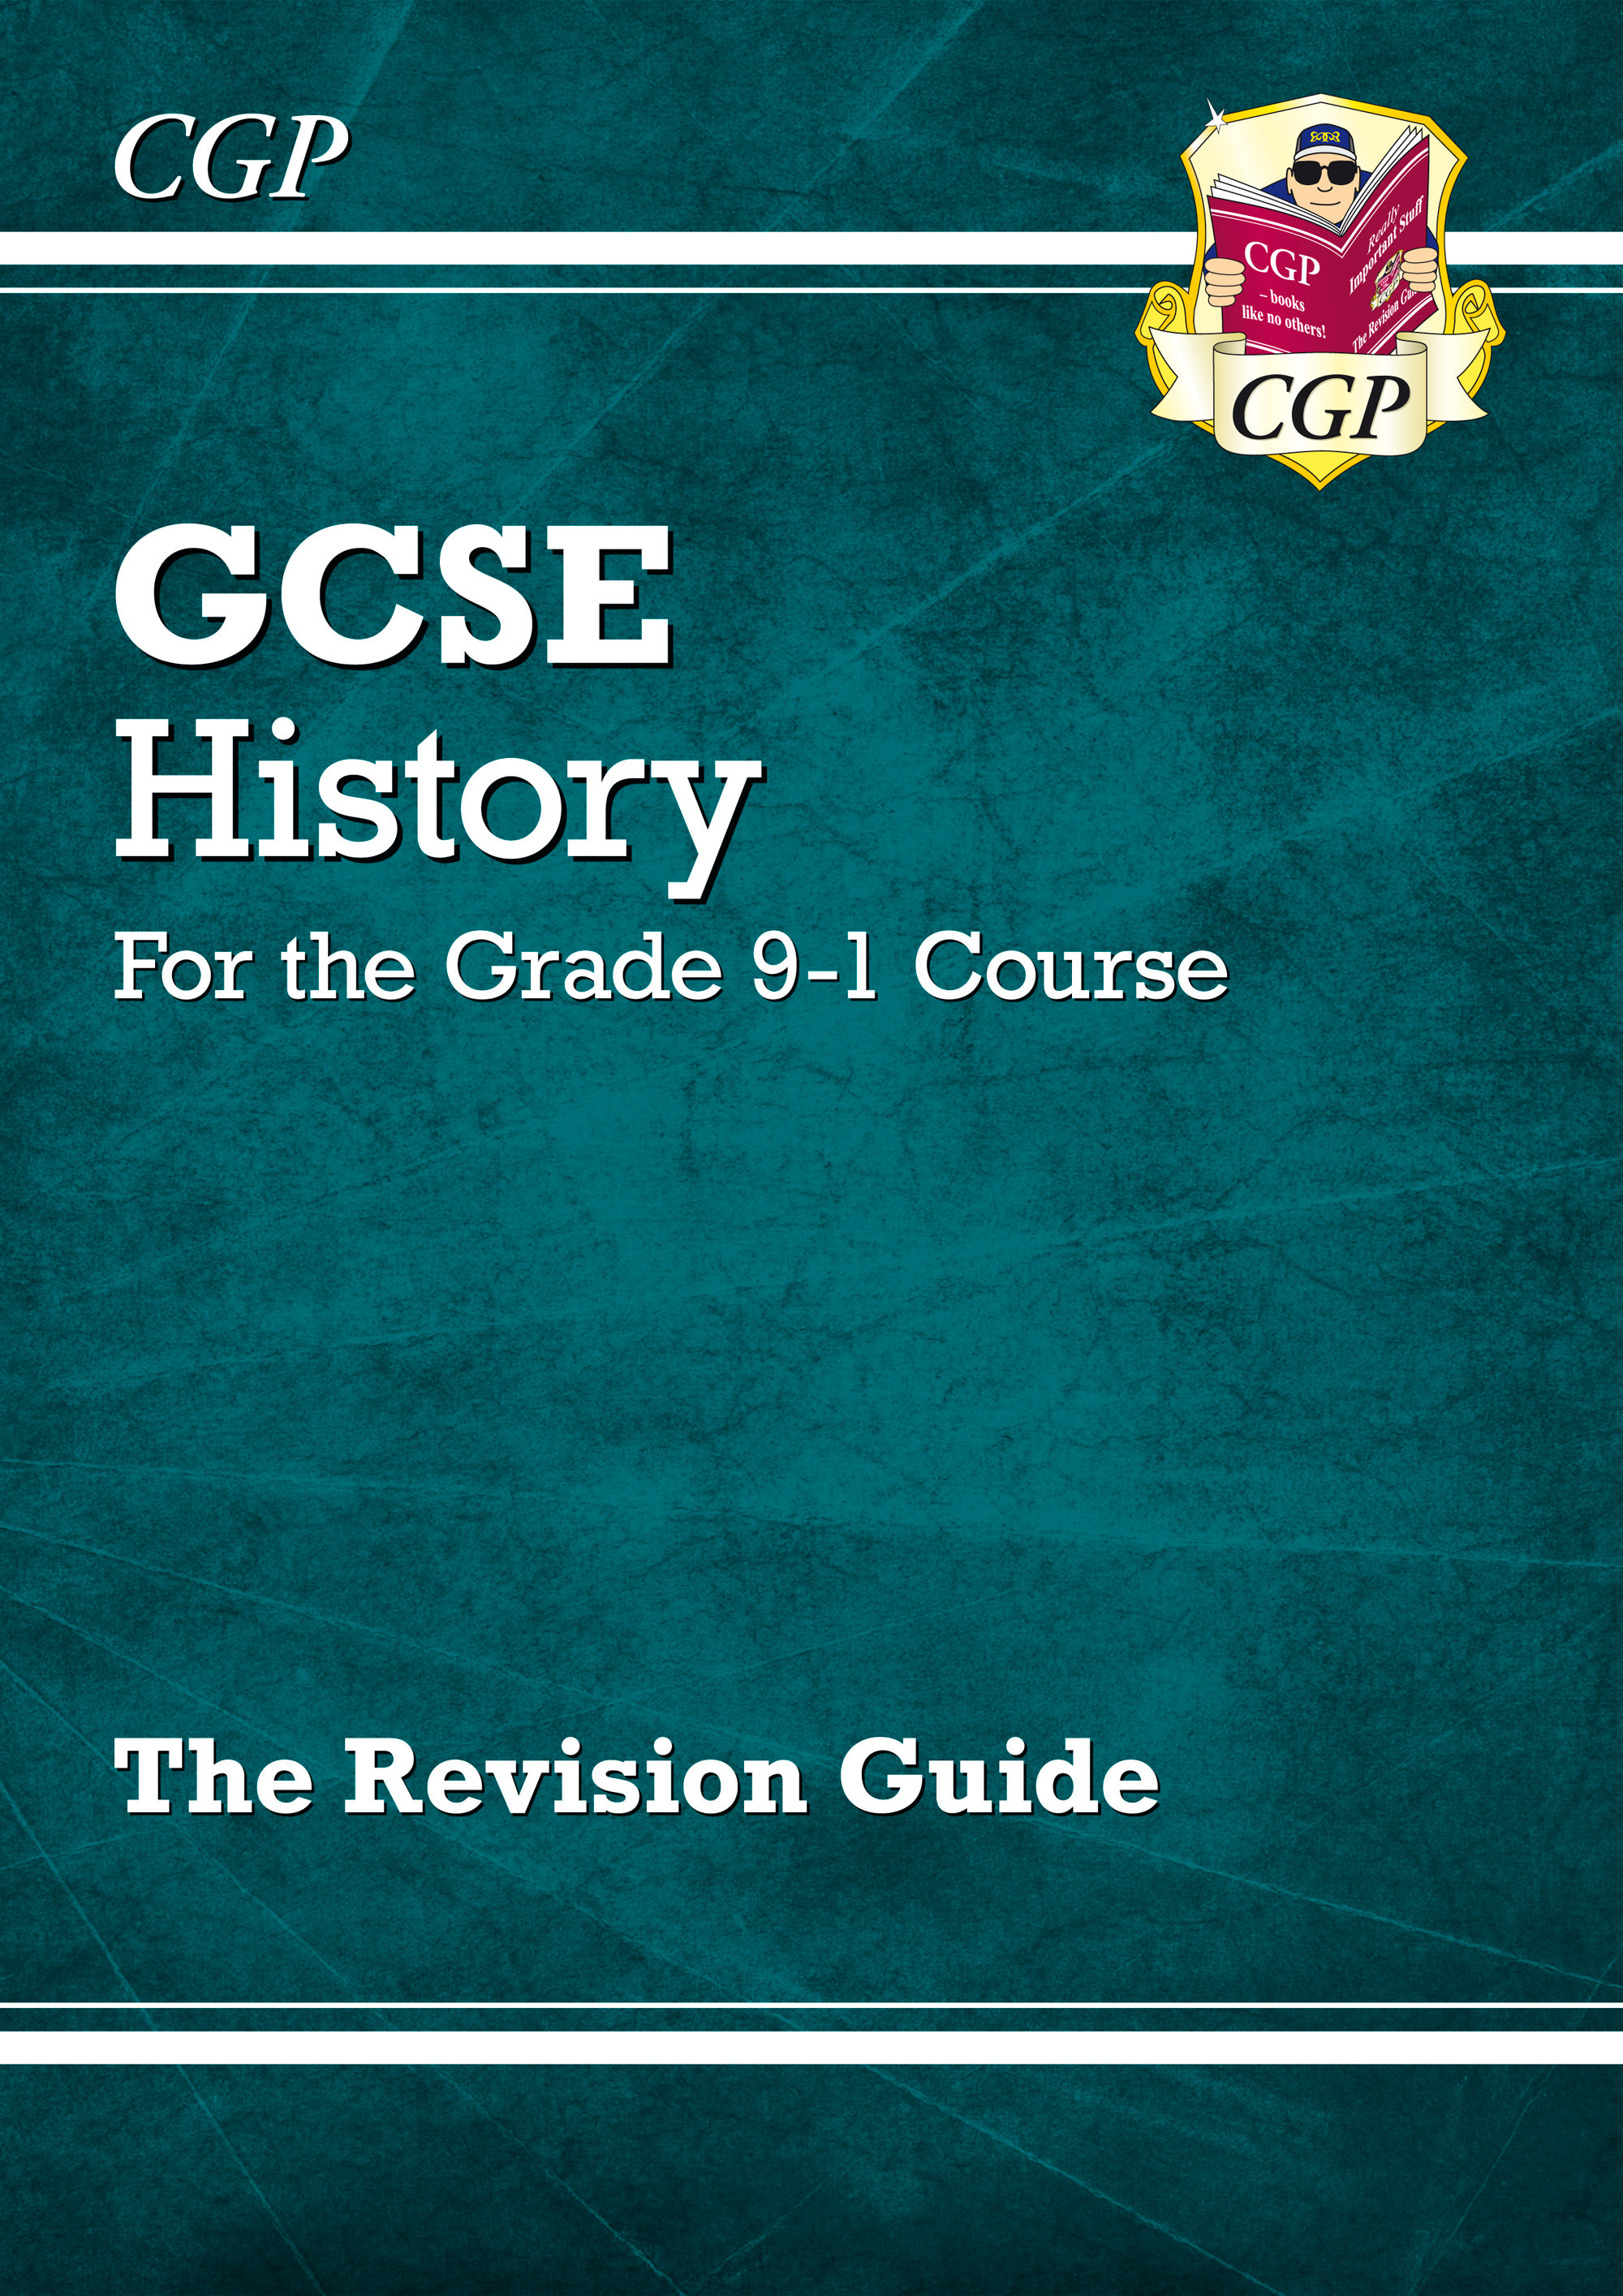 HHR41 - GCSE History Revision Guide - for the Grade 9-1 Course